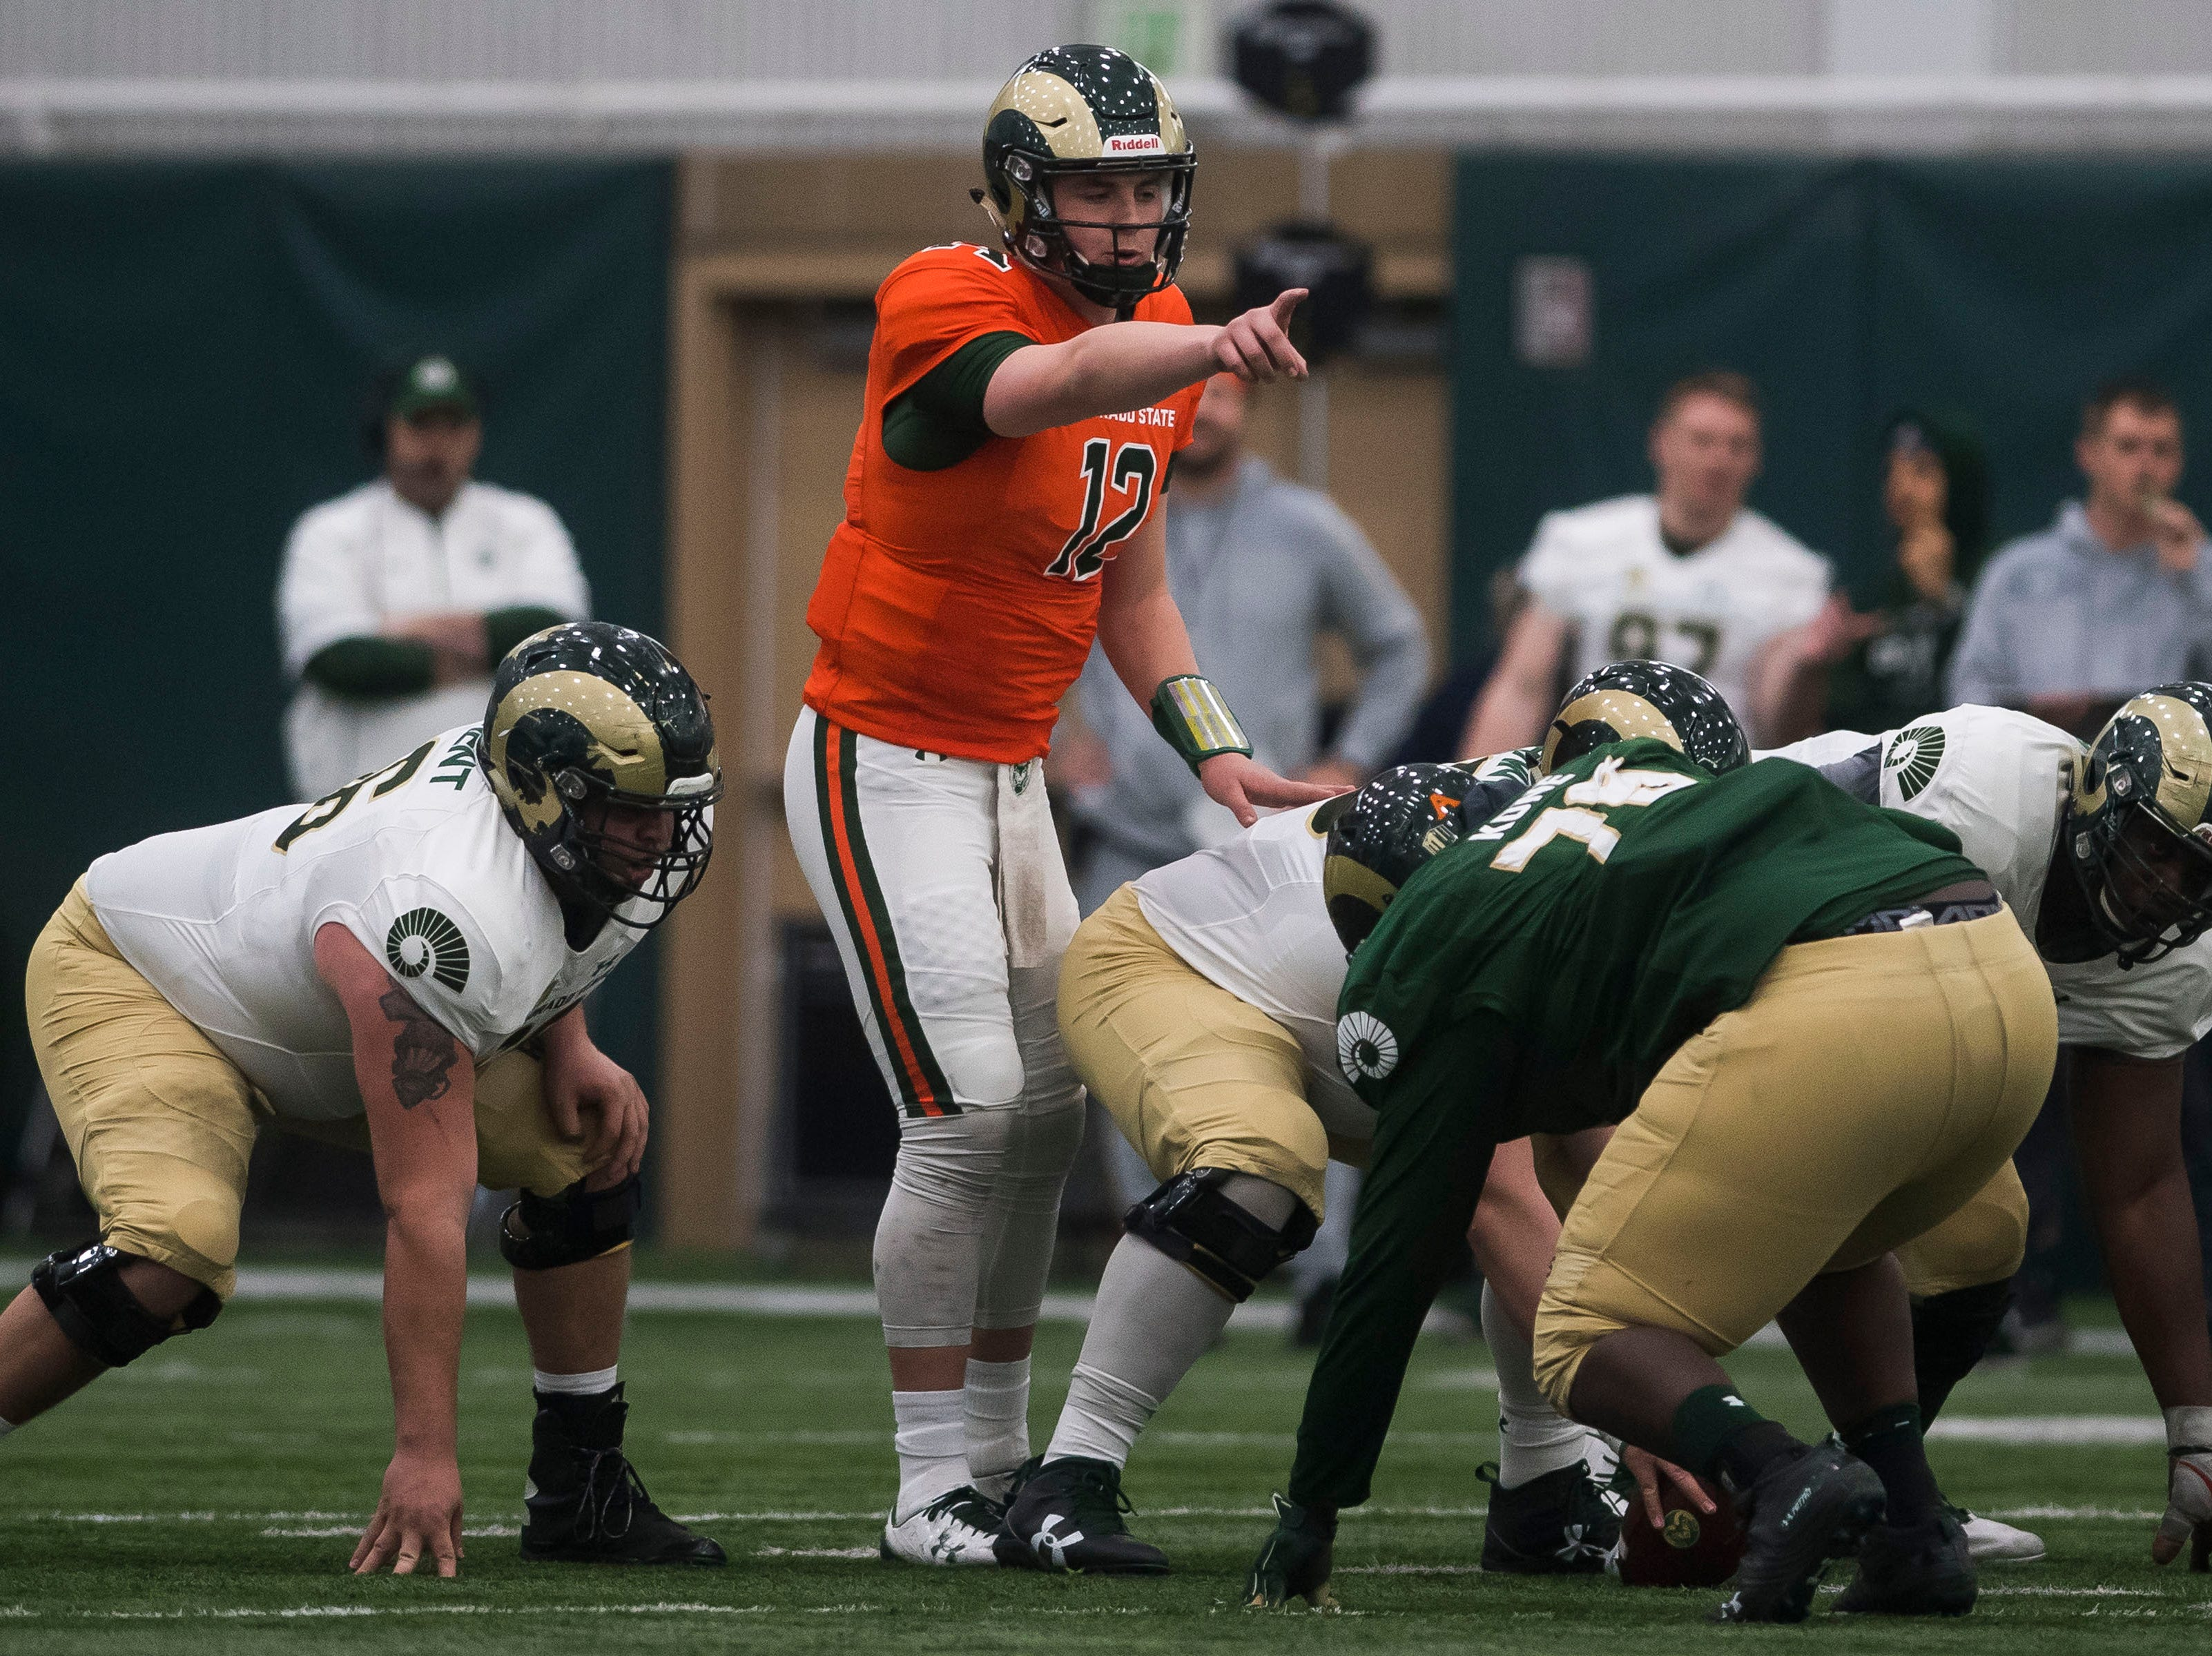 CSU junior quarterback Patrick O'Brien (12) signals to his team during CSU's Spring game on Thursday, March 14, 2019, at their indoor practice facility in Fort Collins, Colo.